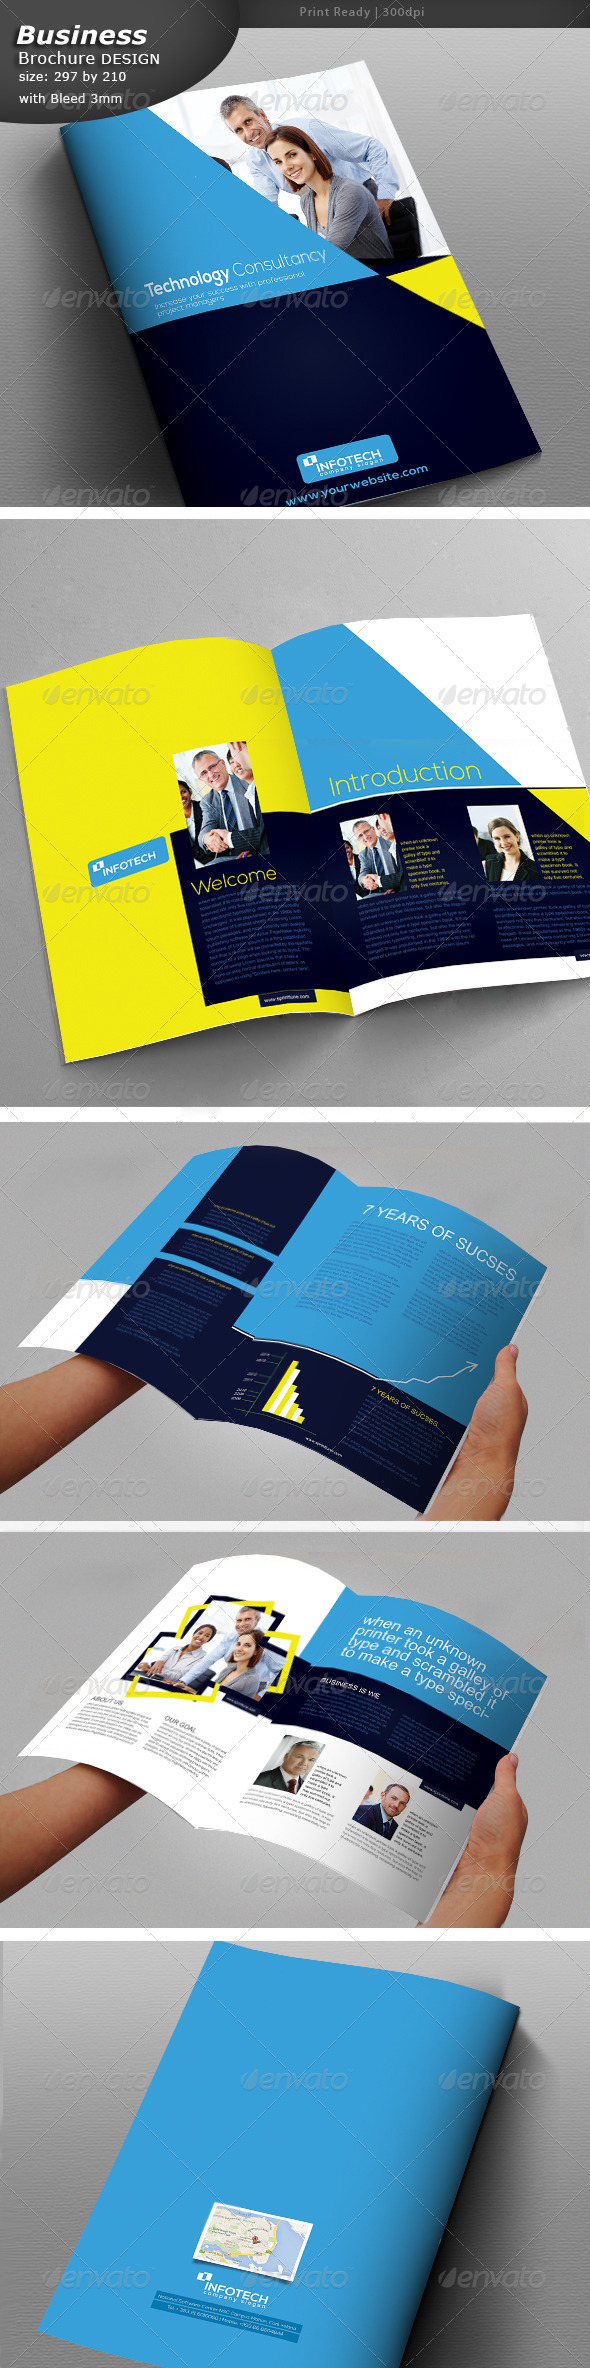 GraphicRiver Business Brochure 8 Pages 7060766